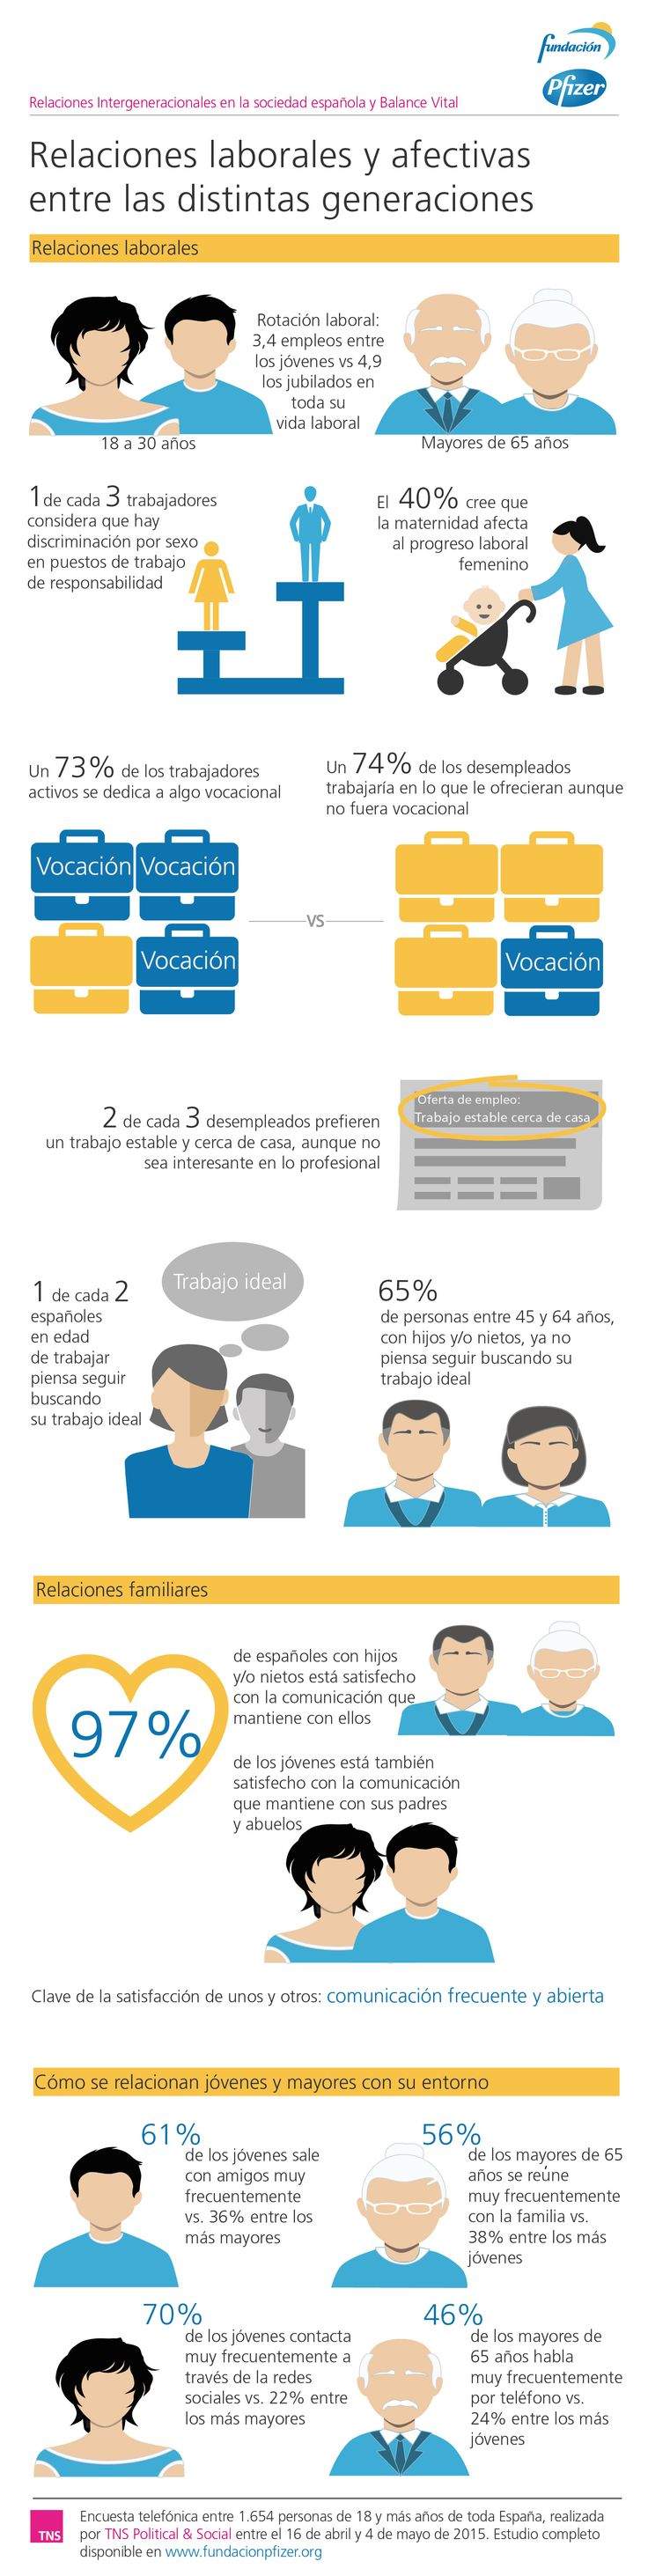 Work relationships between generations. An infographic from Kantar's TNS for Pfizer foundation